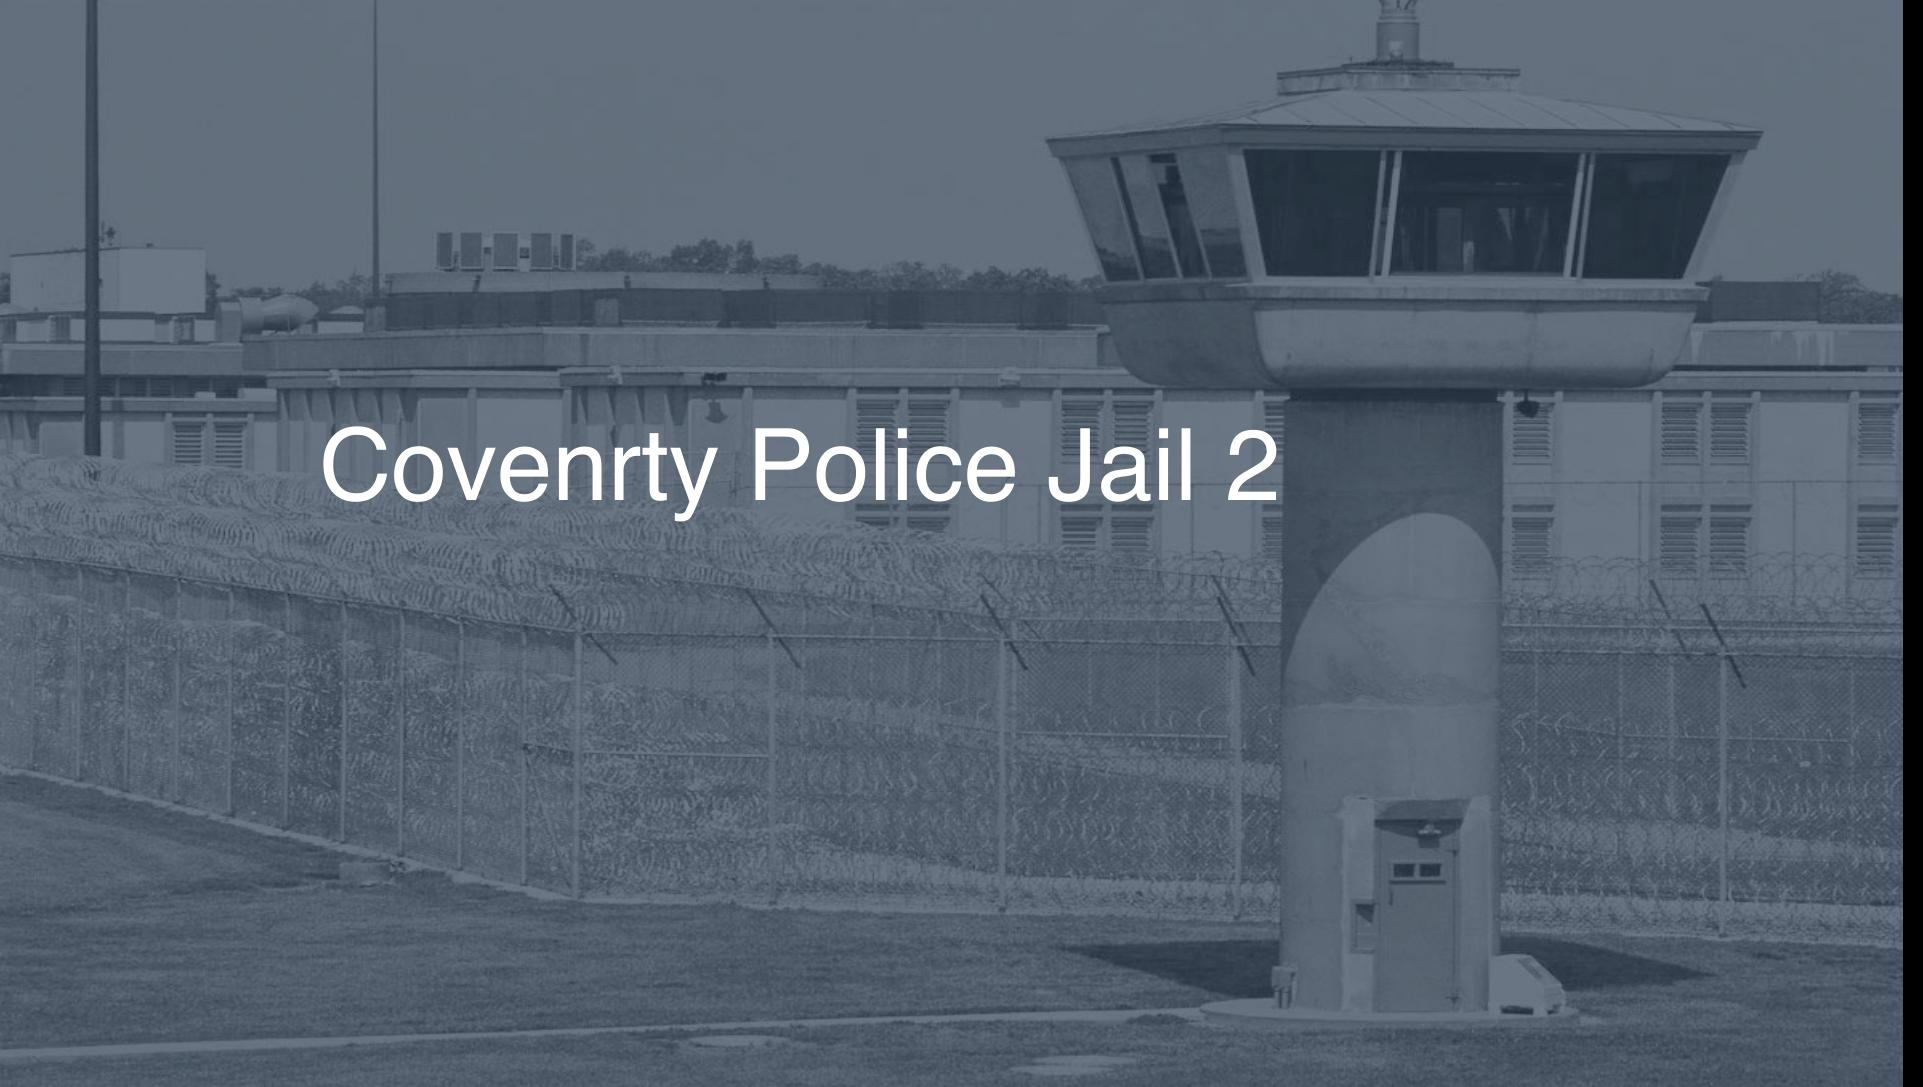 Covenrty Police Jail correctional facility picture